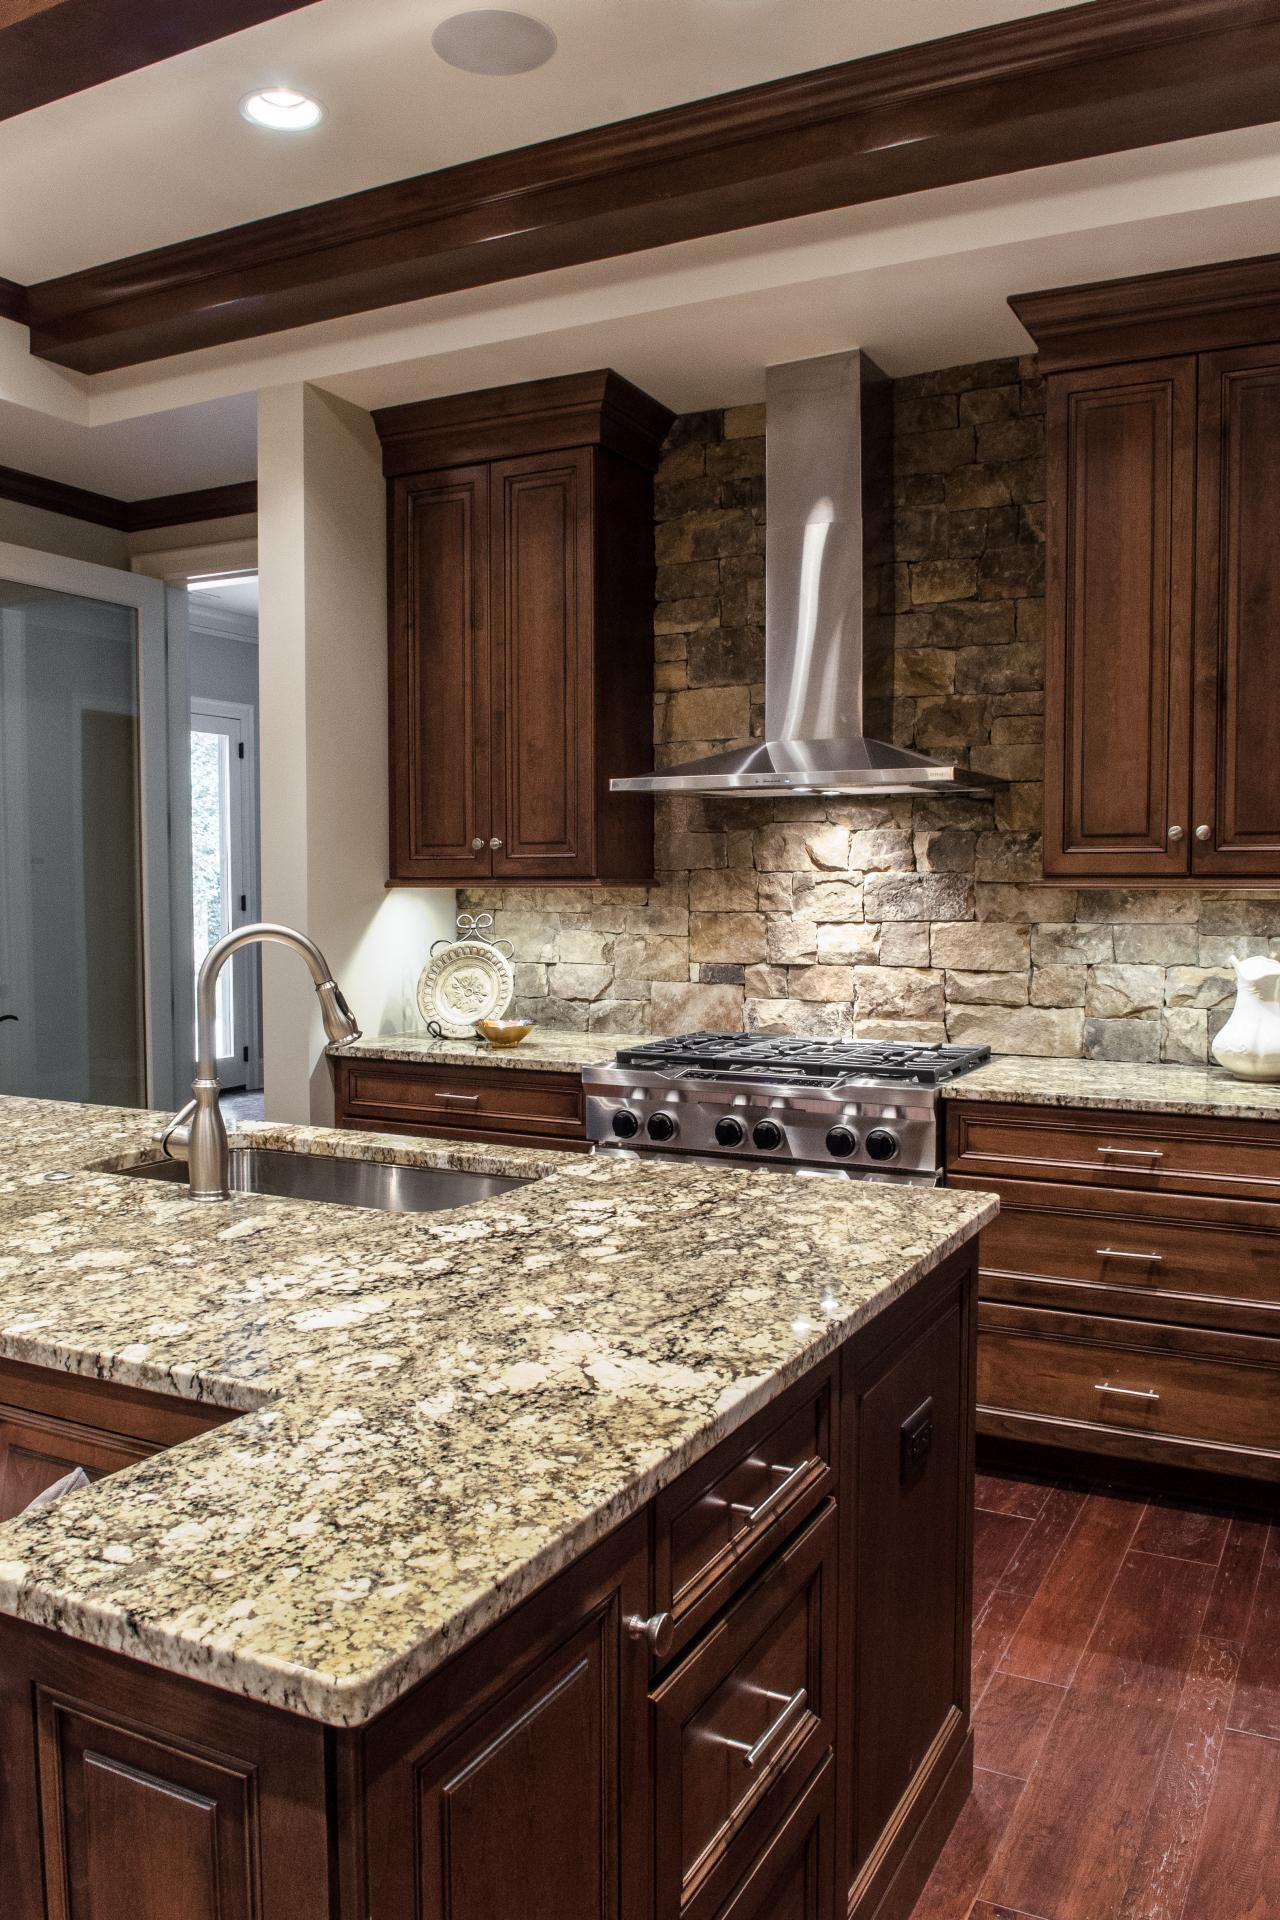 stone backsplash kitchen 3x5 rugs custom wood cabinets and gray countertops are top